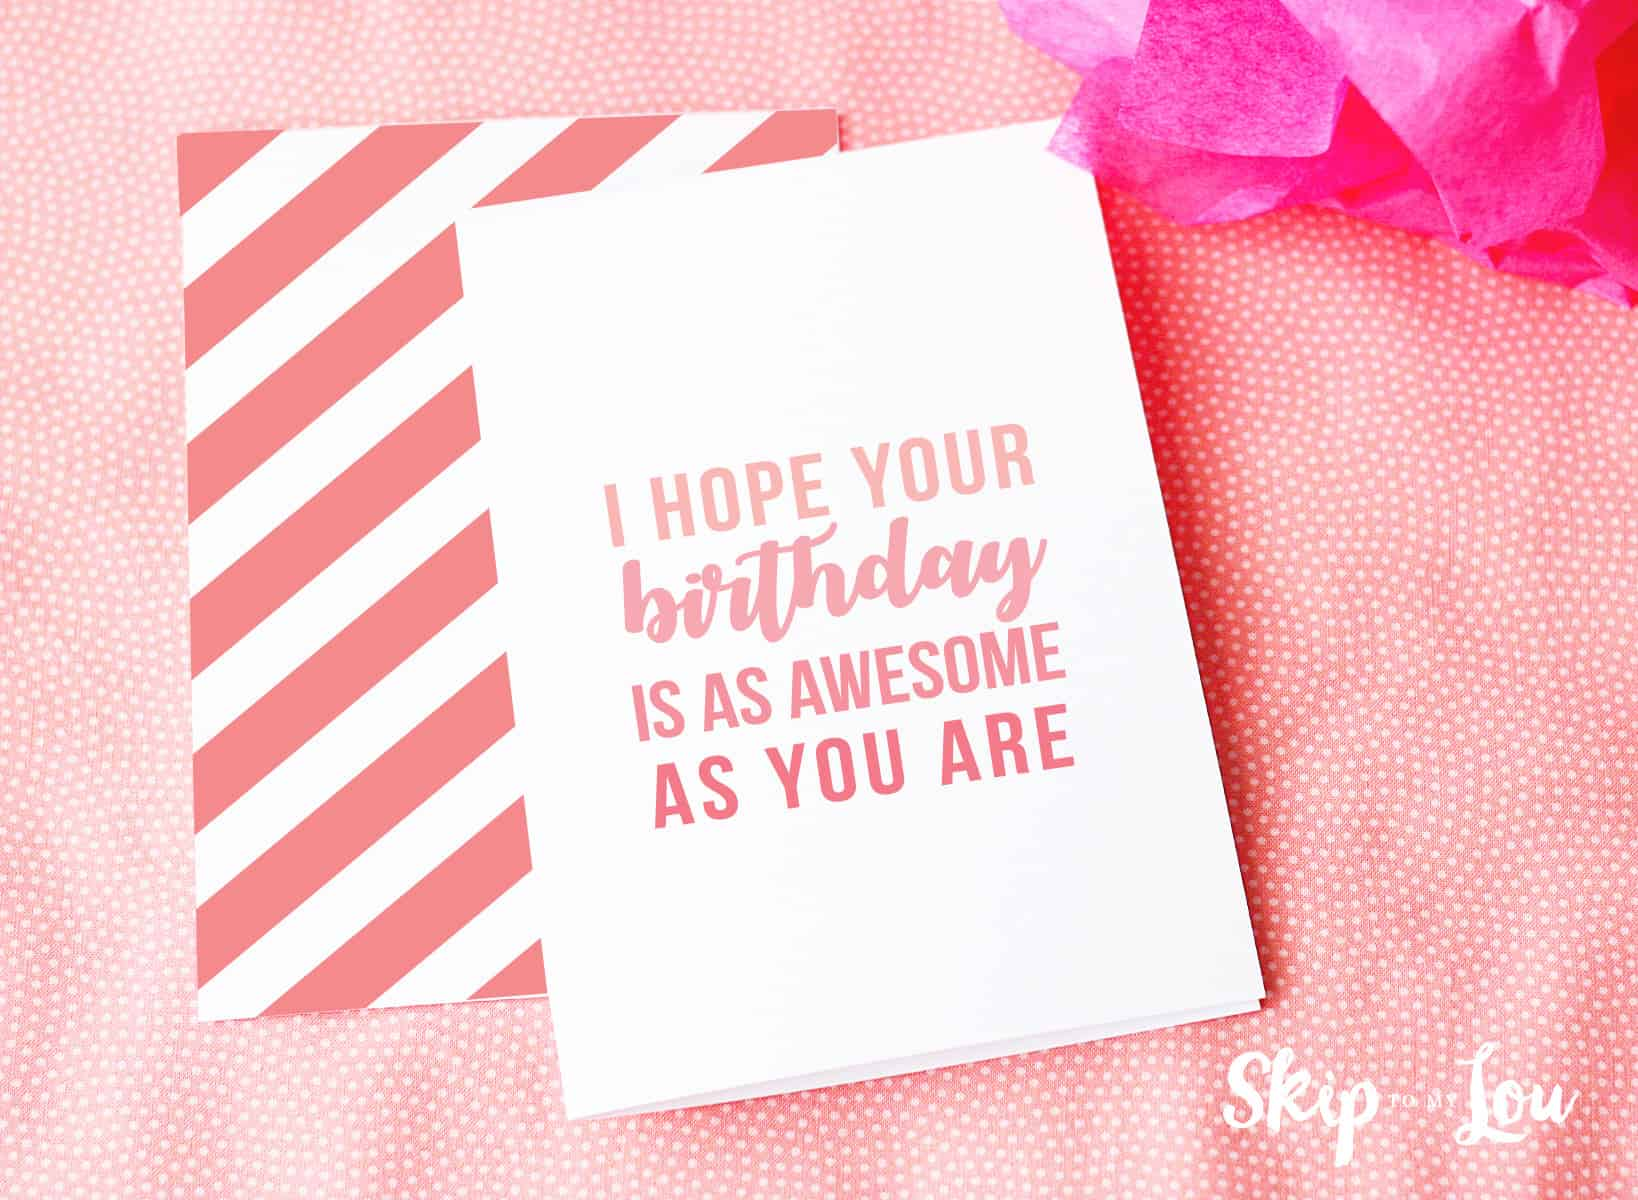 photograph relating to Free Printable Birthday Cards for Husband called No cost Printable Birthday Playing cards Pass up In the direction of My Lou